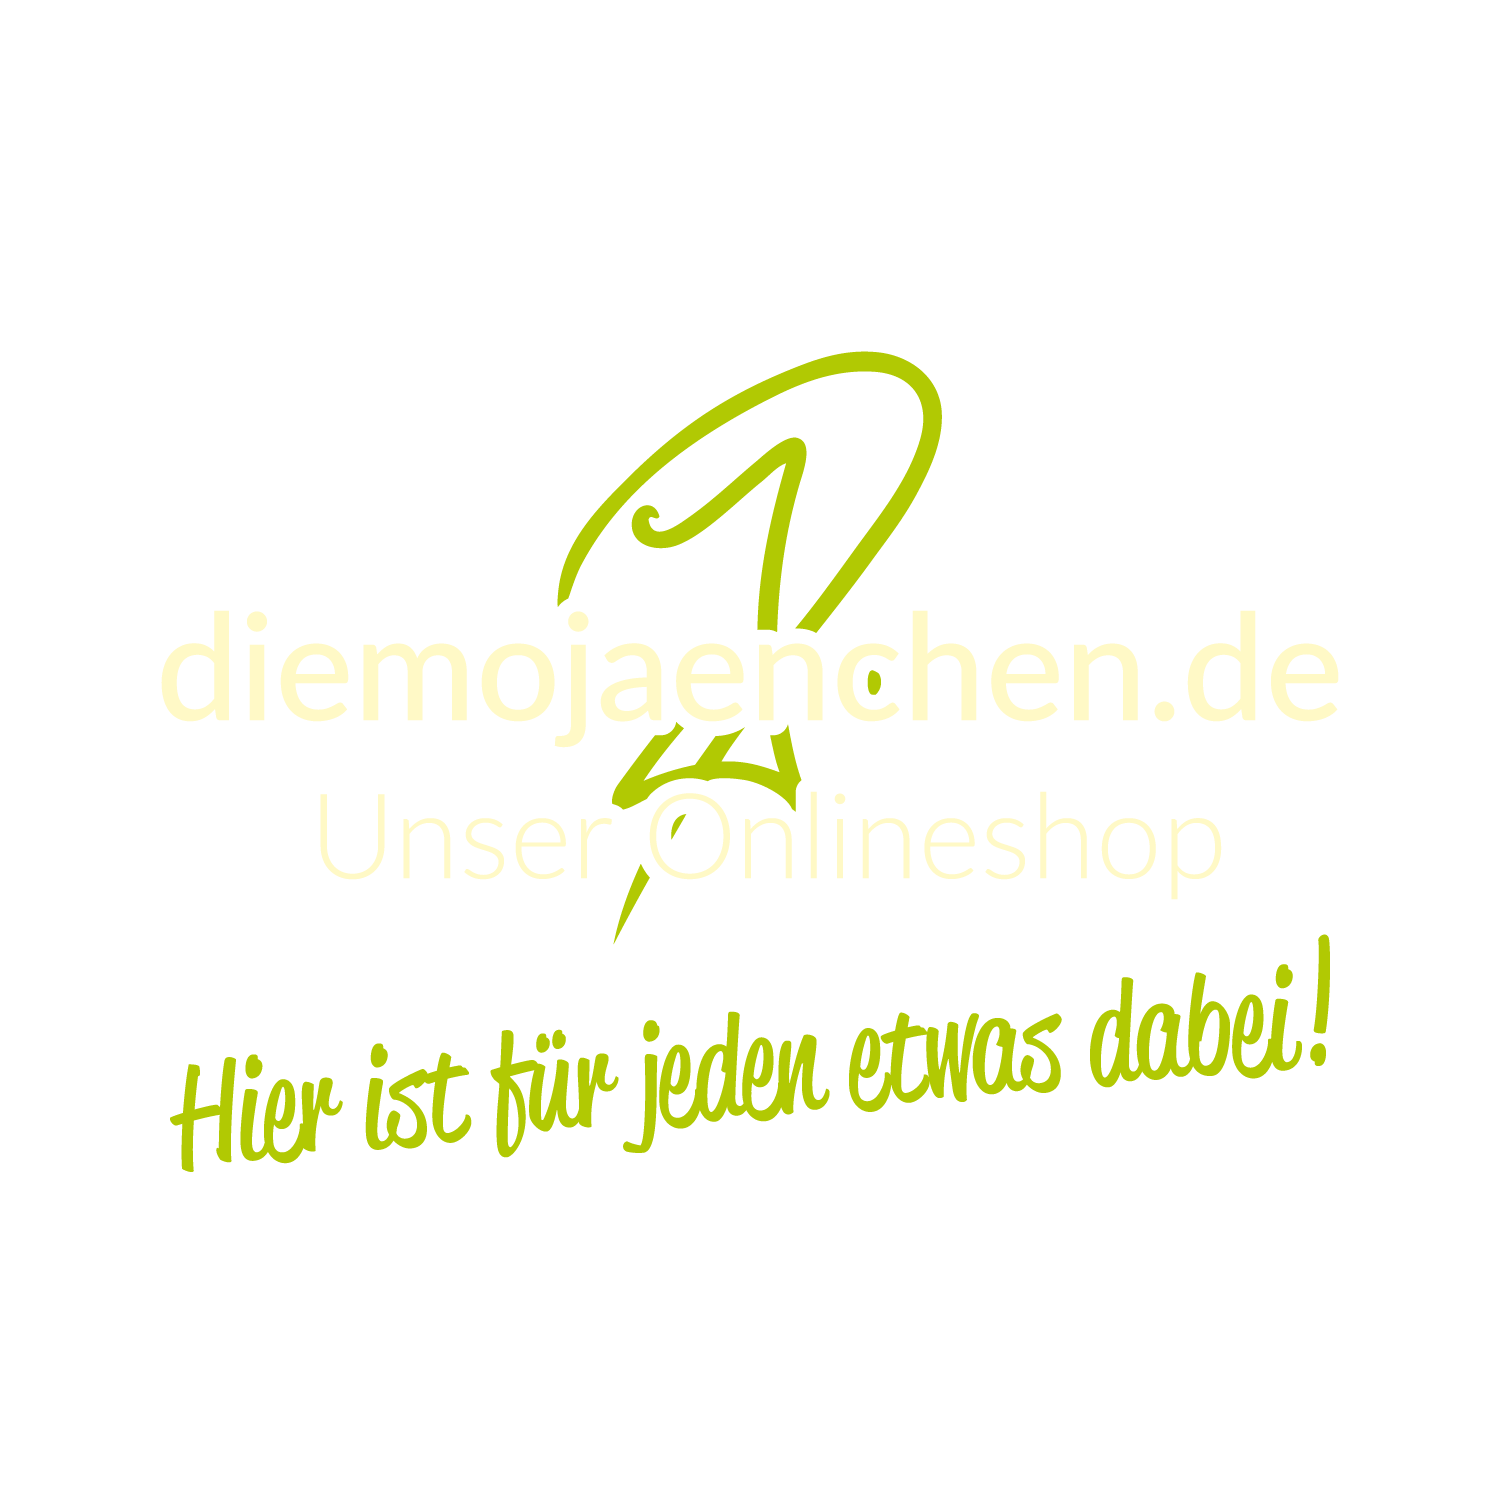 diemojaenchen.de SHOPPINGZONE Onlineshop